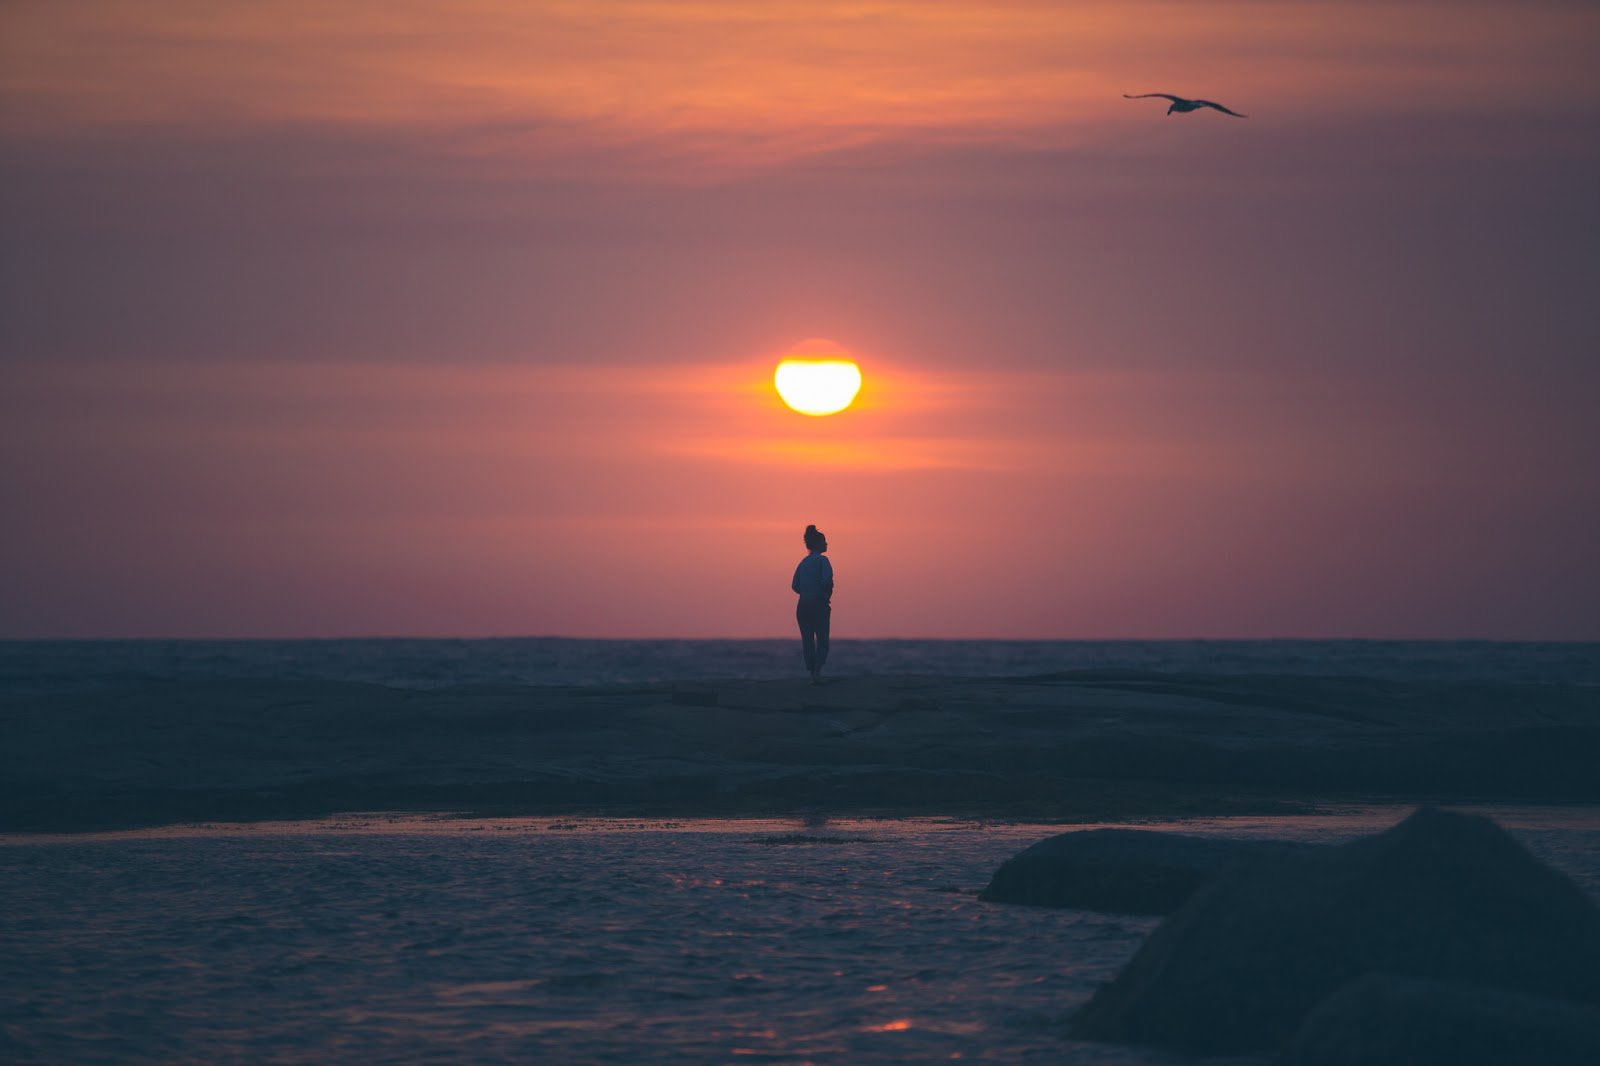 Person standing on a beach with a moon above him photo by Louise Coghill